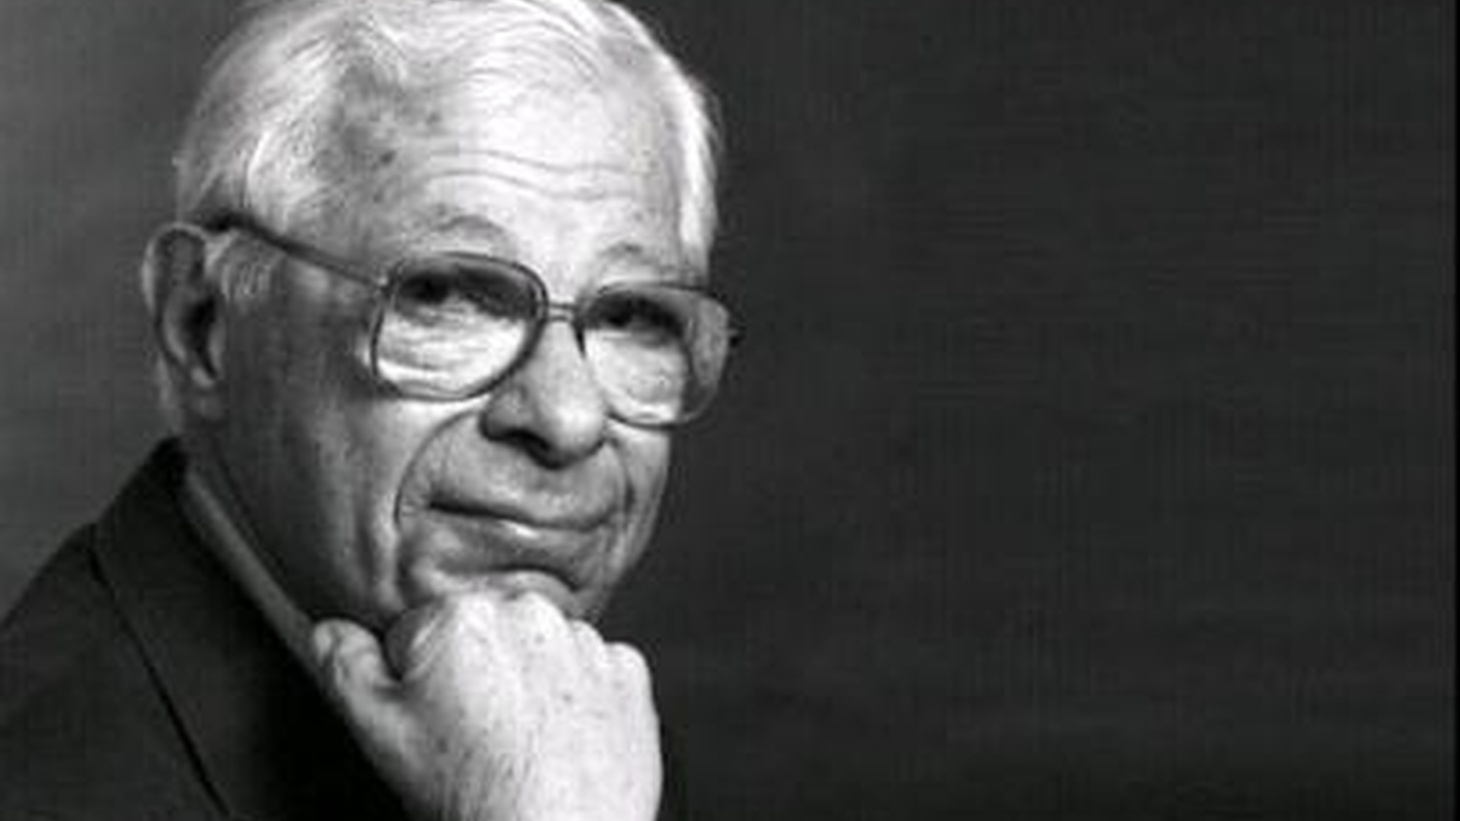 Veteran journalist Daniel Schorr died peacefully this morning at the age  of 93. It's impossible to overestimate Schorr's impact on journalism, from his early days working with Edward R. Murrow, to the founding of CNN, to the last 25 years as NPR's news analyst. Tune in tonight at 6pm for a special one-hour program dedicated to the legacy of Dan Schorr.